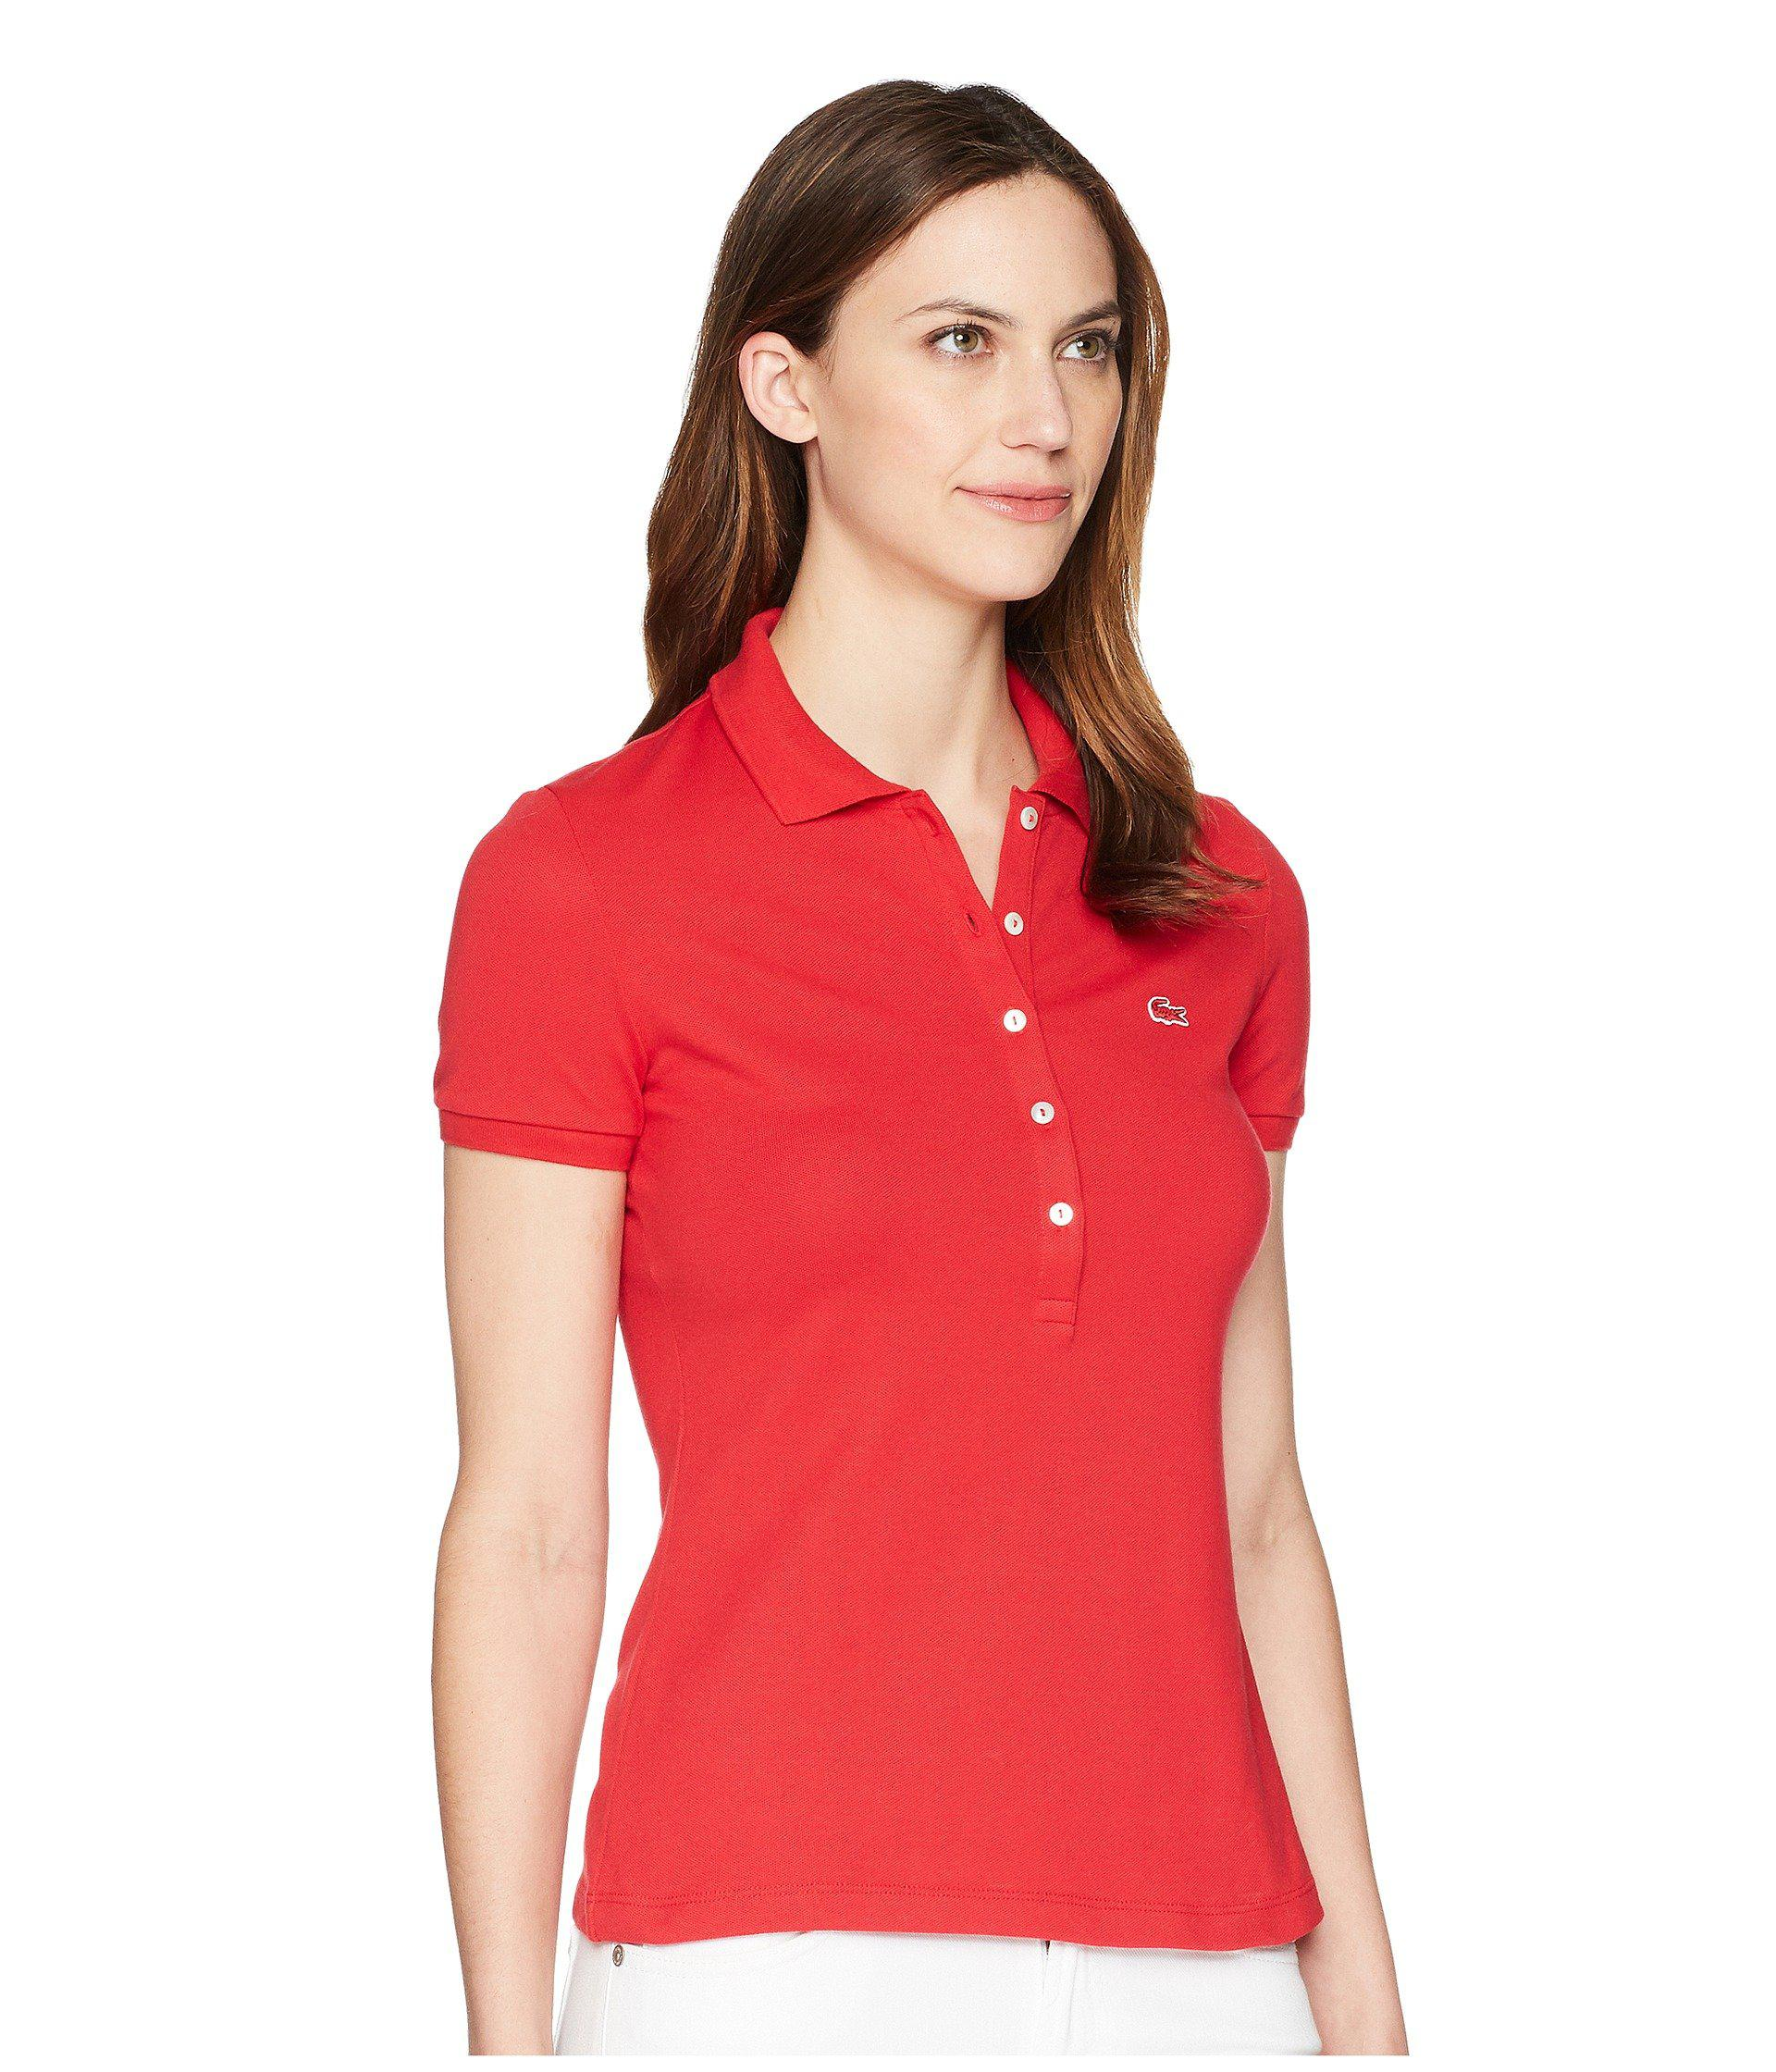 72a5ad1d Lacoste Womens Polo Shirts On Sale - DREAMWORKS